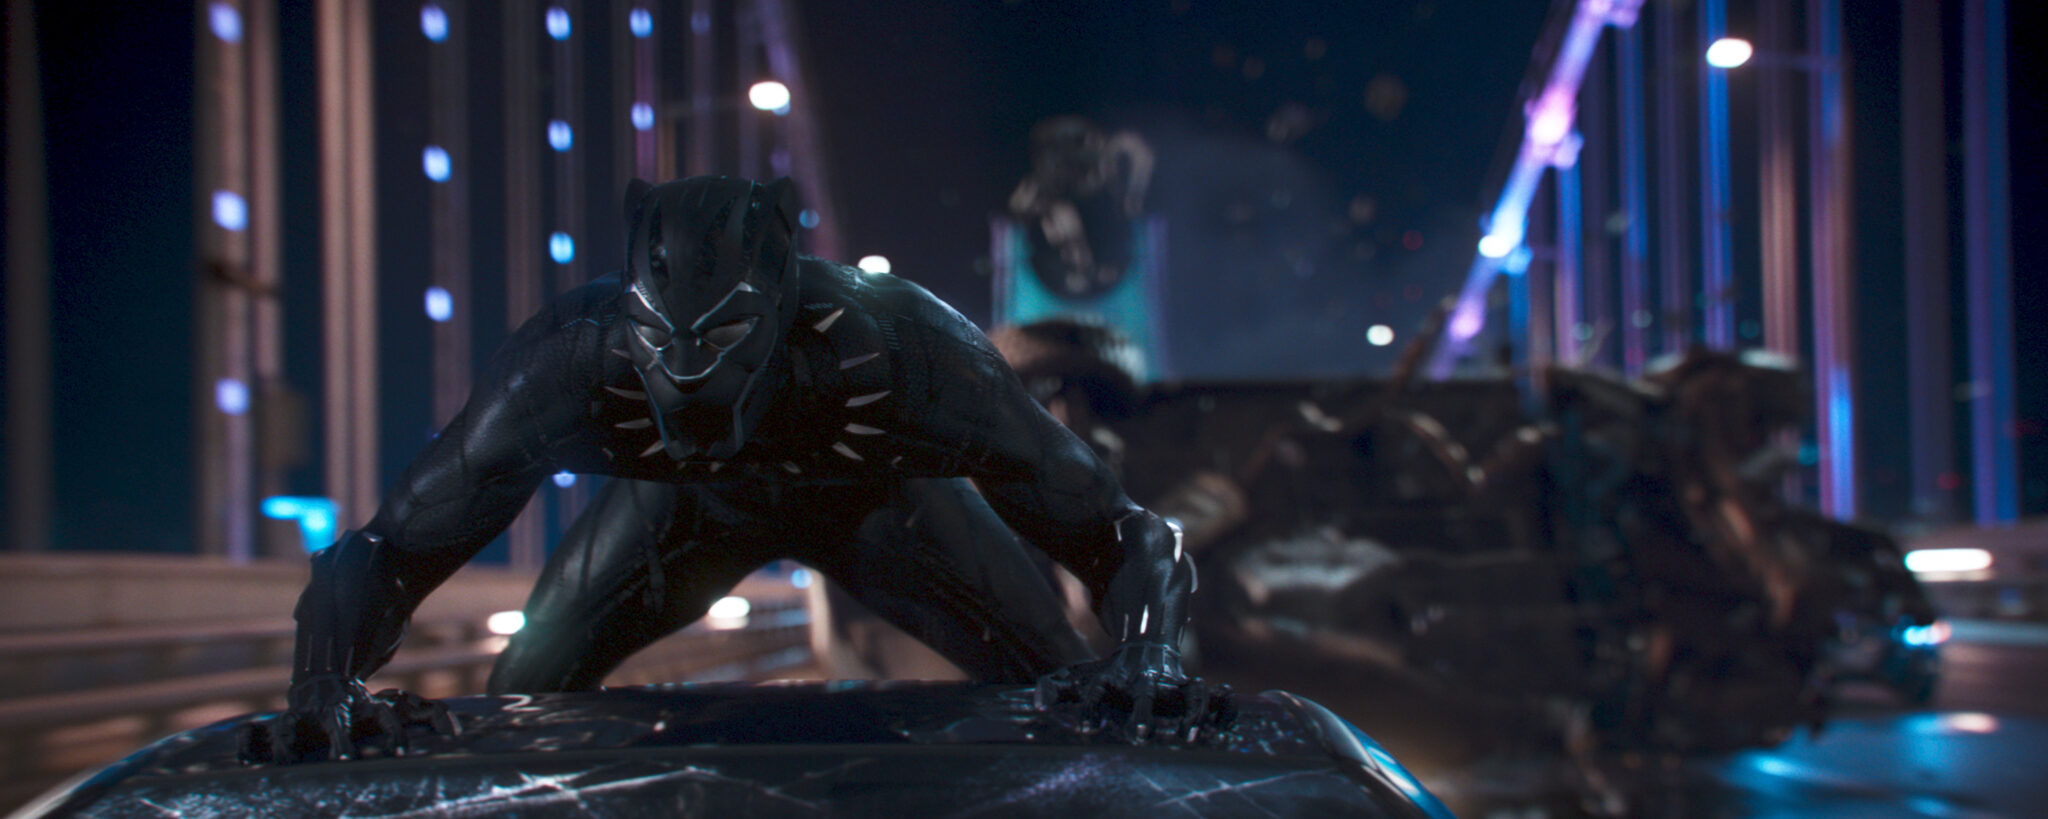 Spirit of the Panther: A Black Panther Review